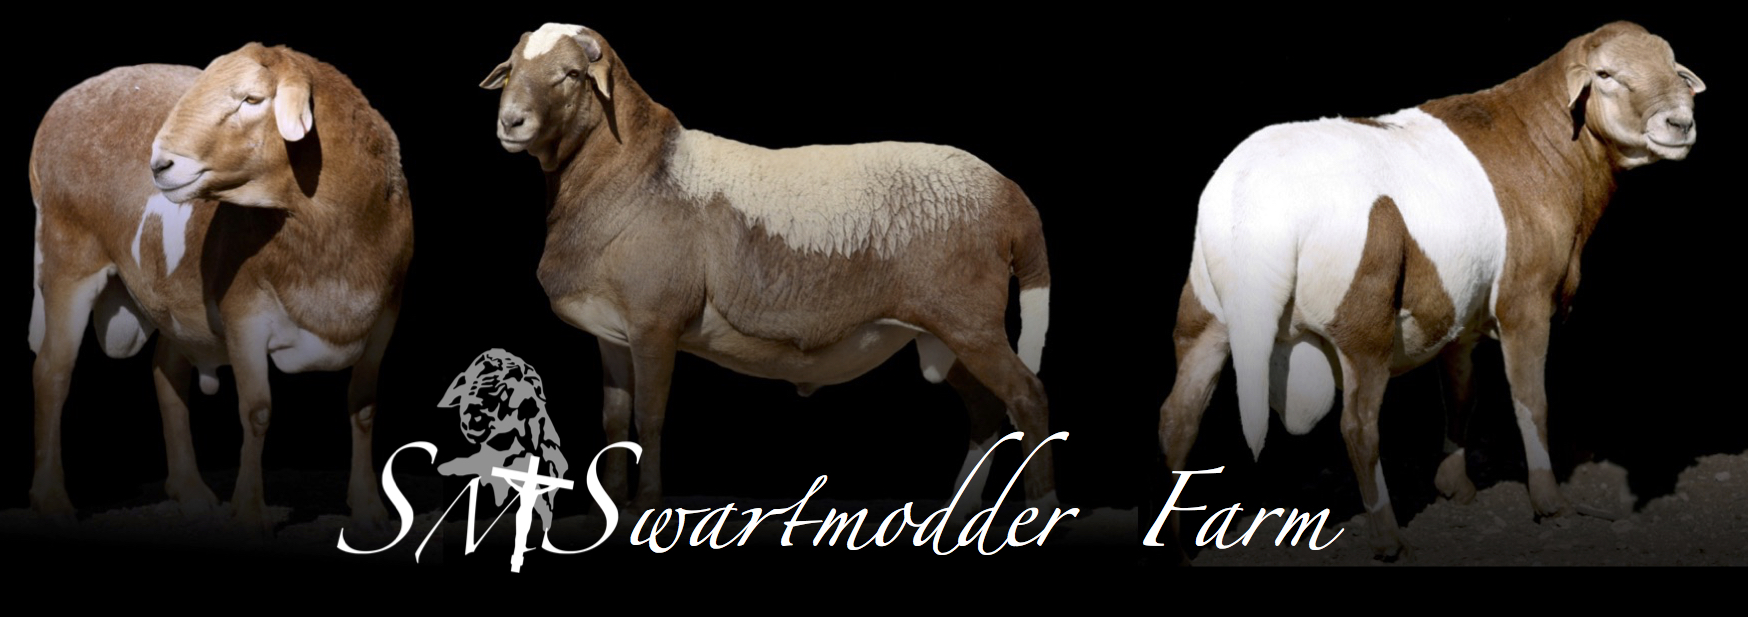 Swartmodder Farm